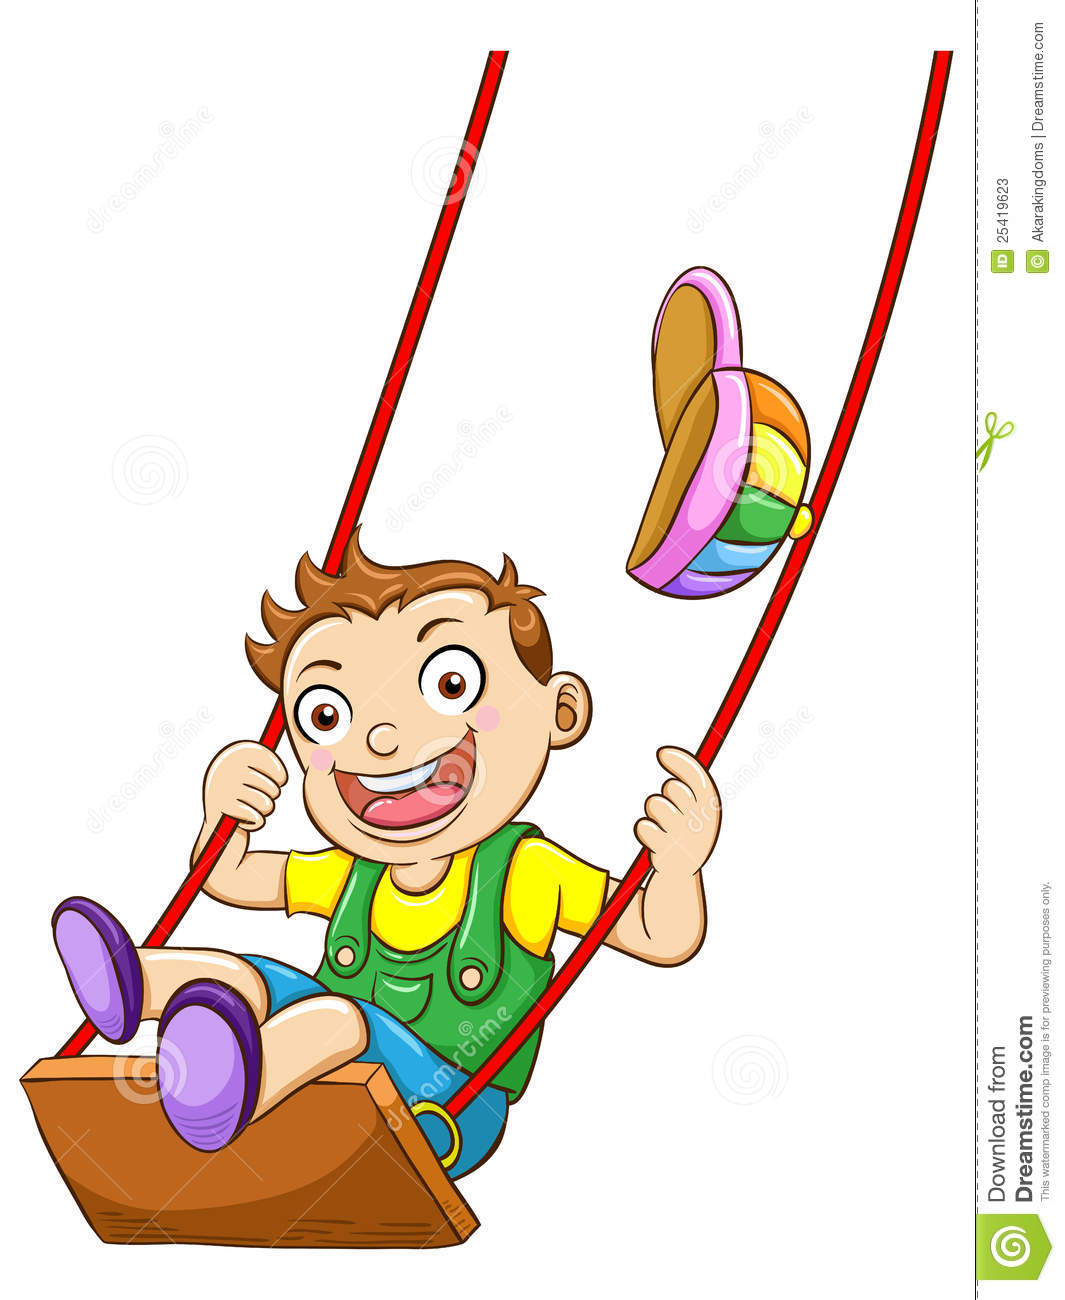 how to draw a kid on a swing